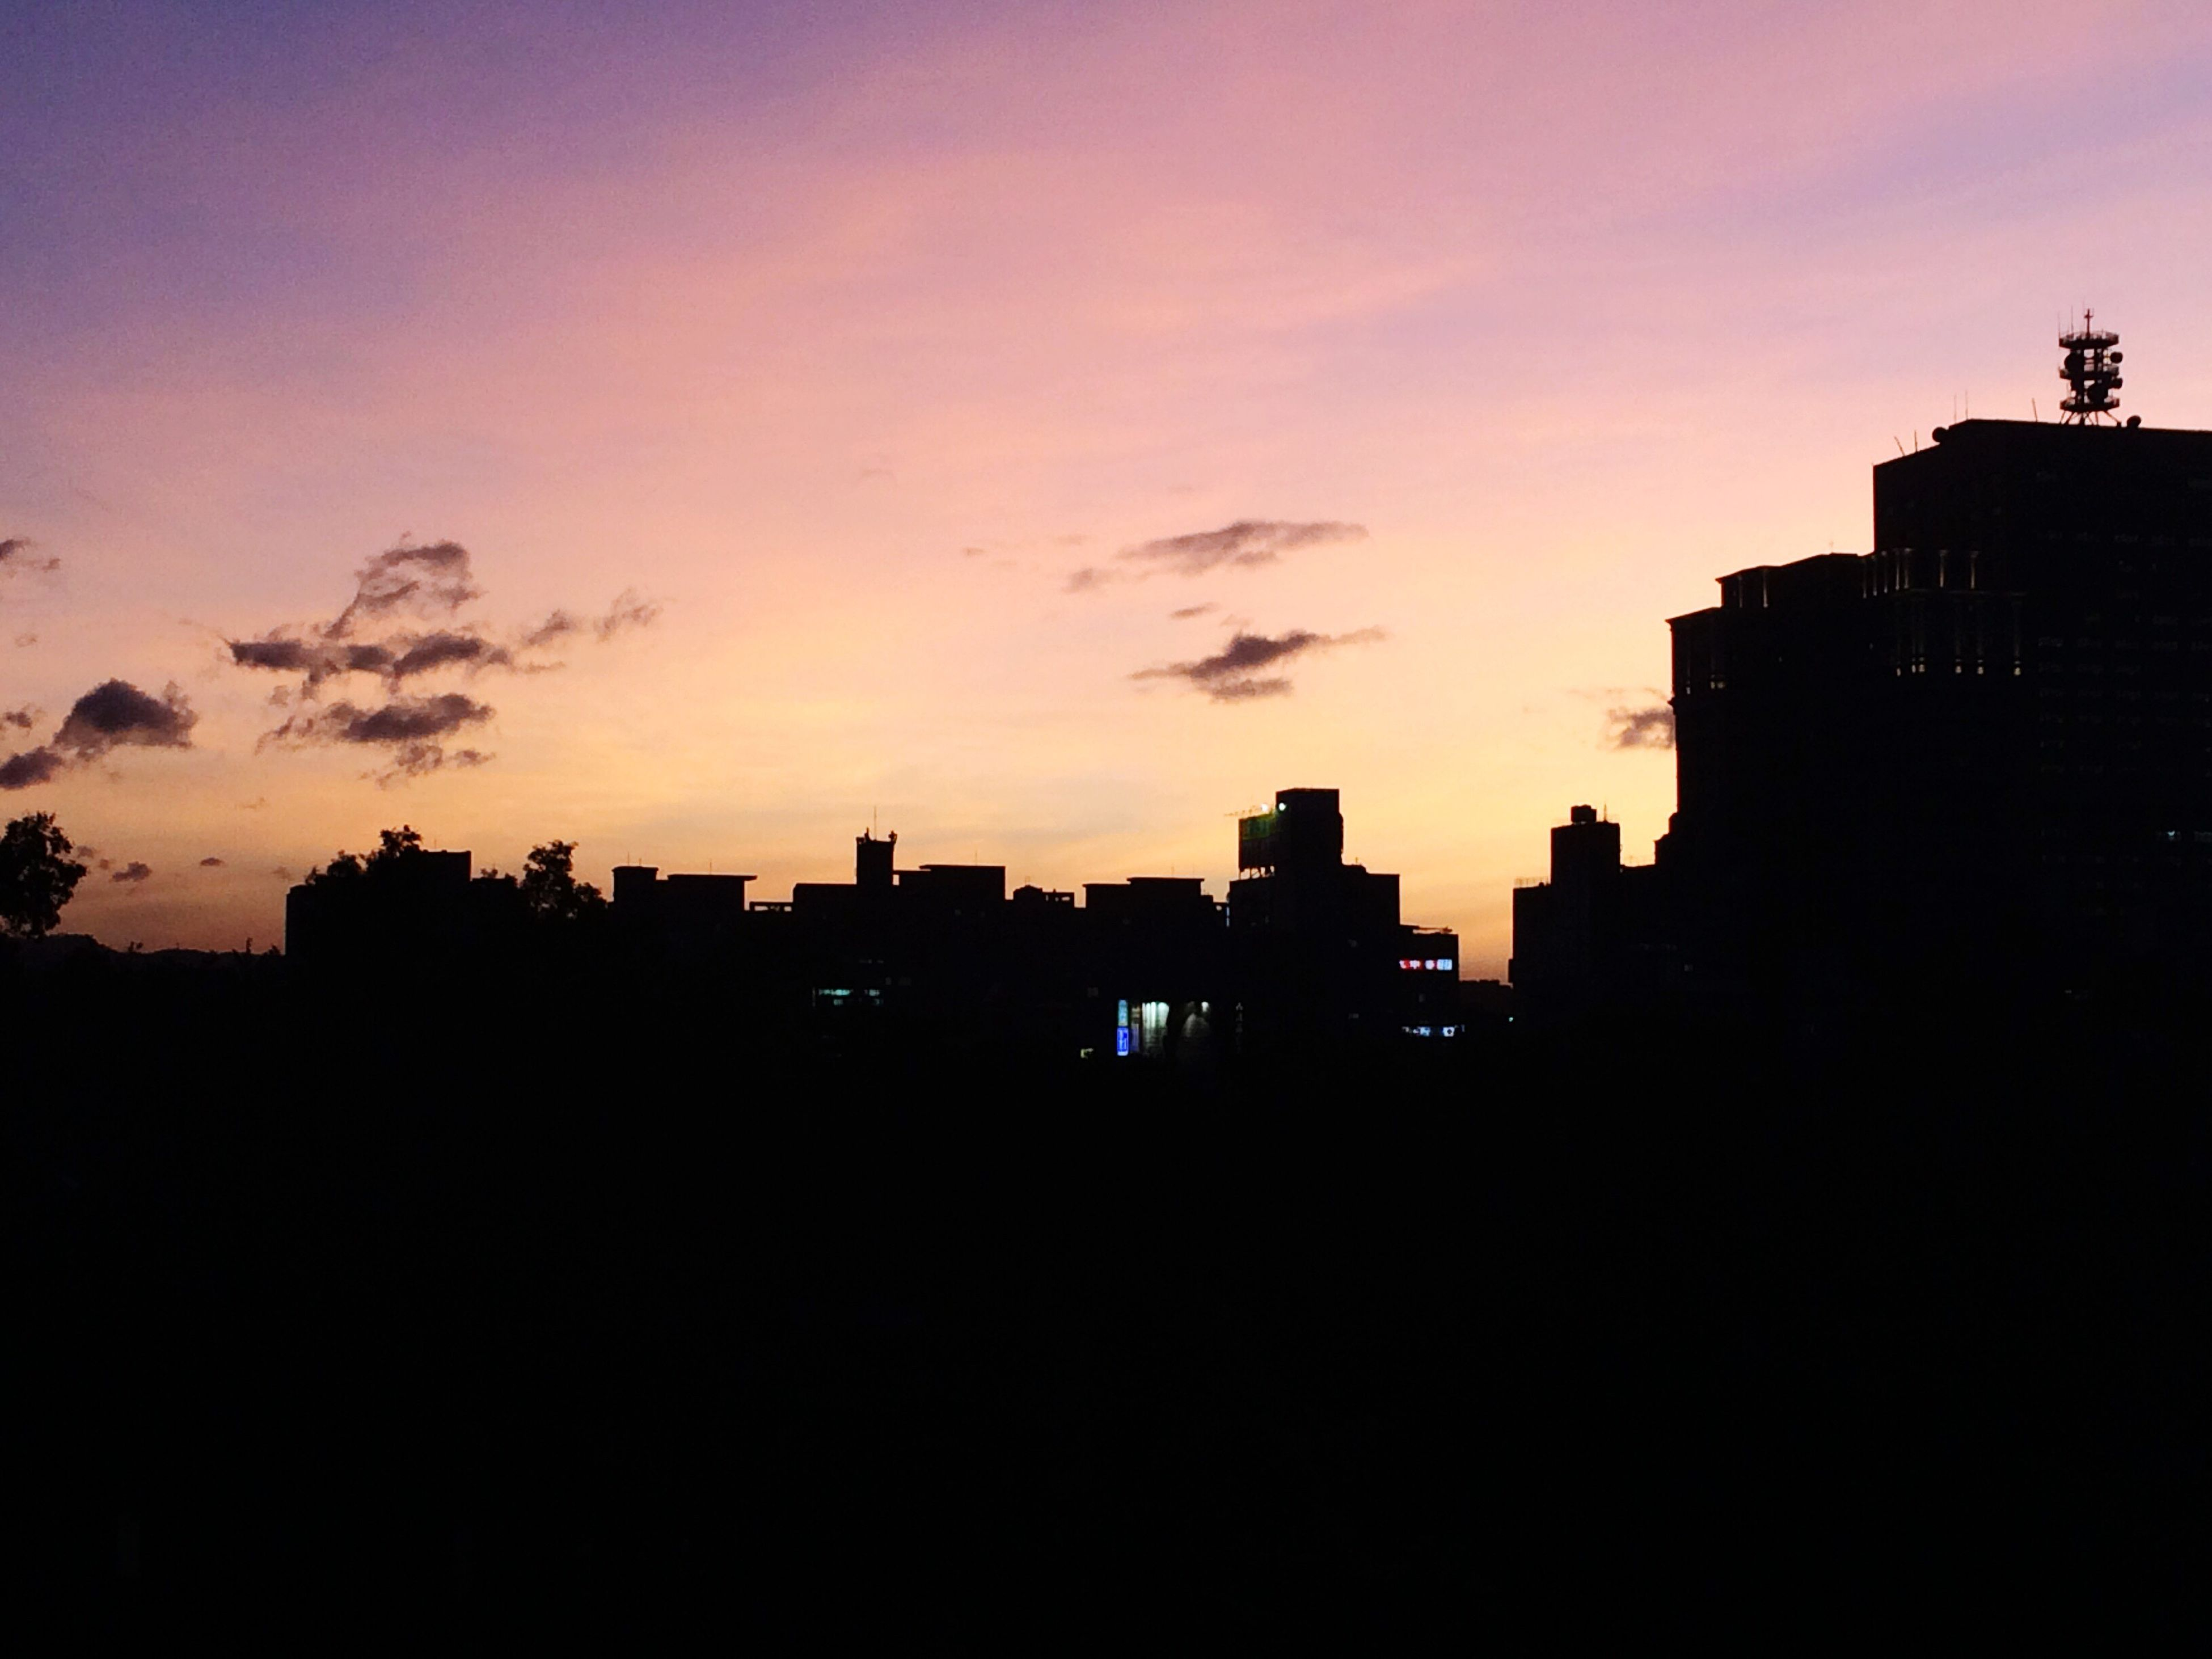 sunset, silhouette, building exterior, sky, built structure, architecture, beauty in nature, nature, city, cityscape, outdoors, urban skyline, no people